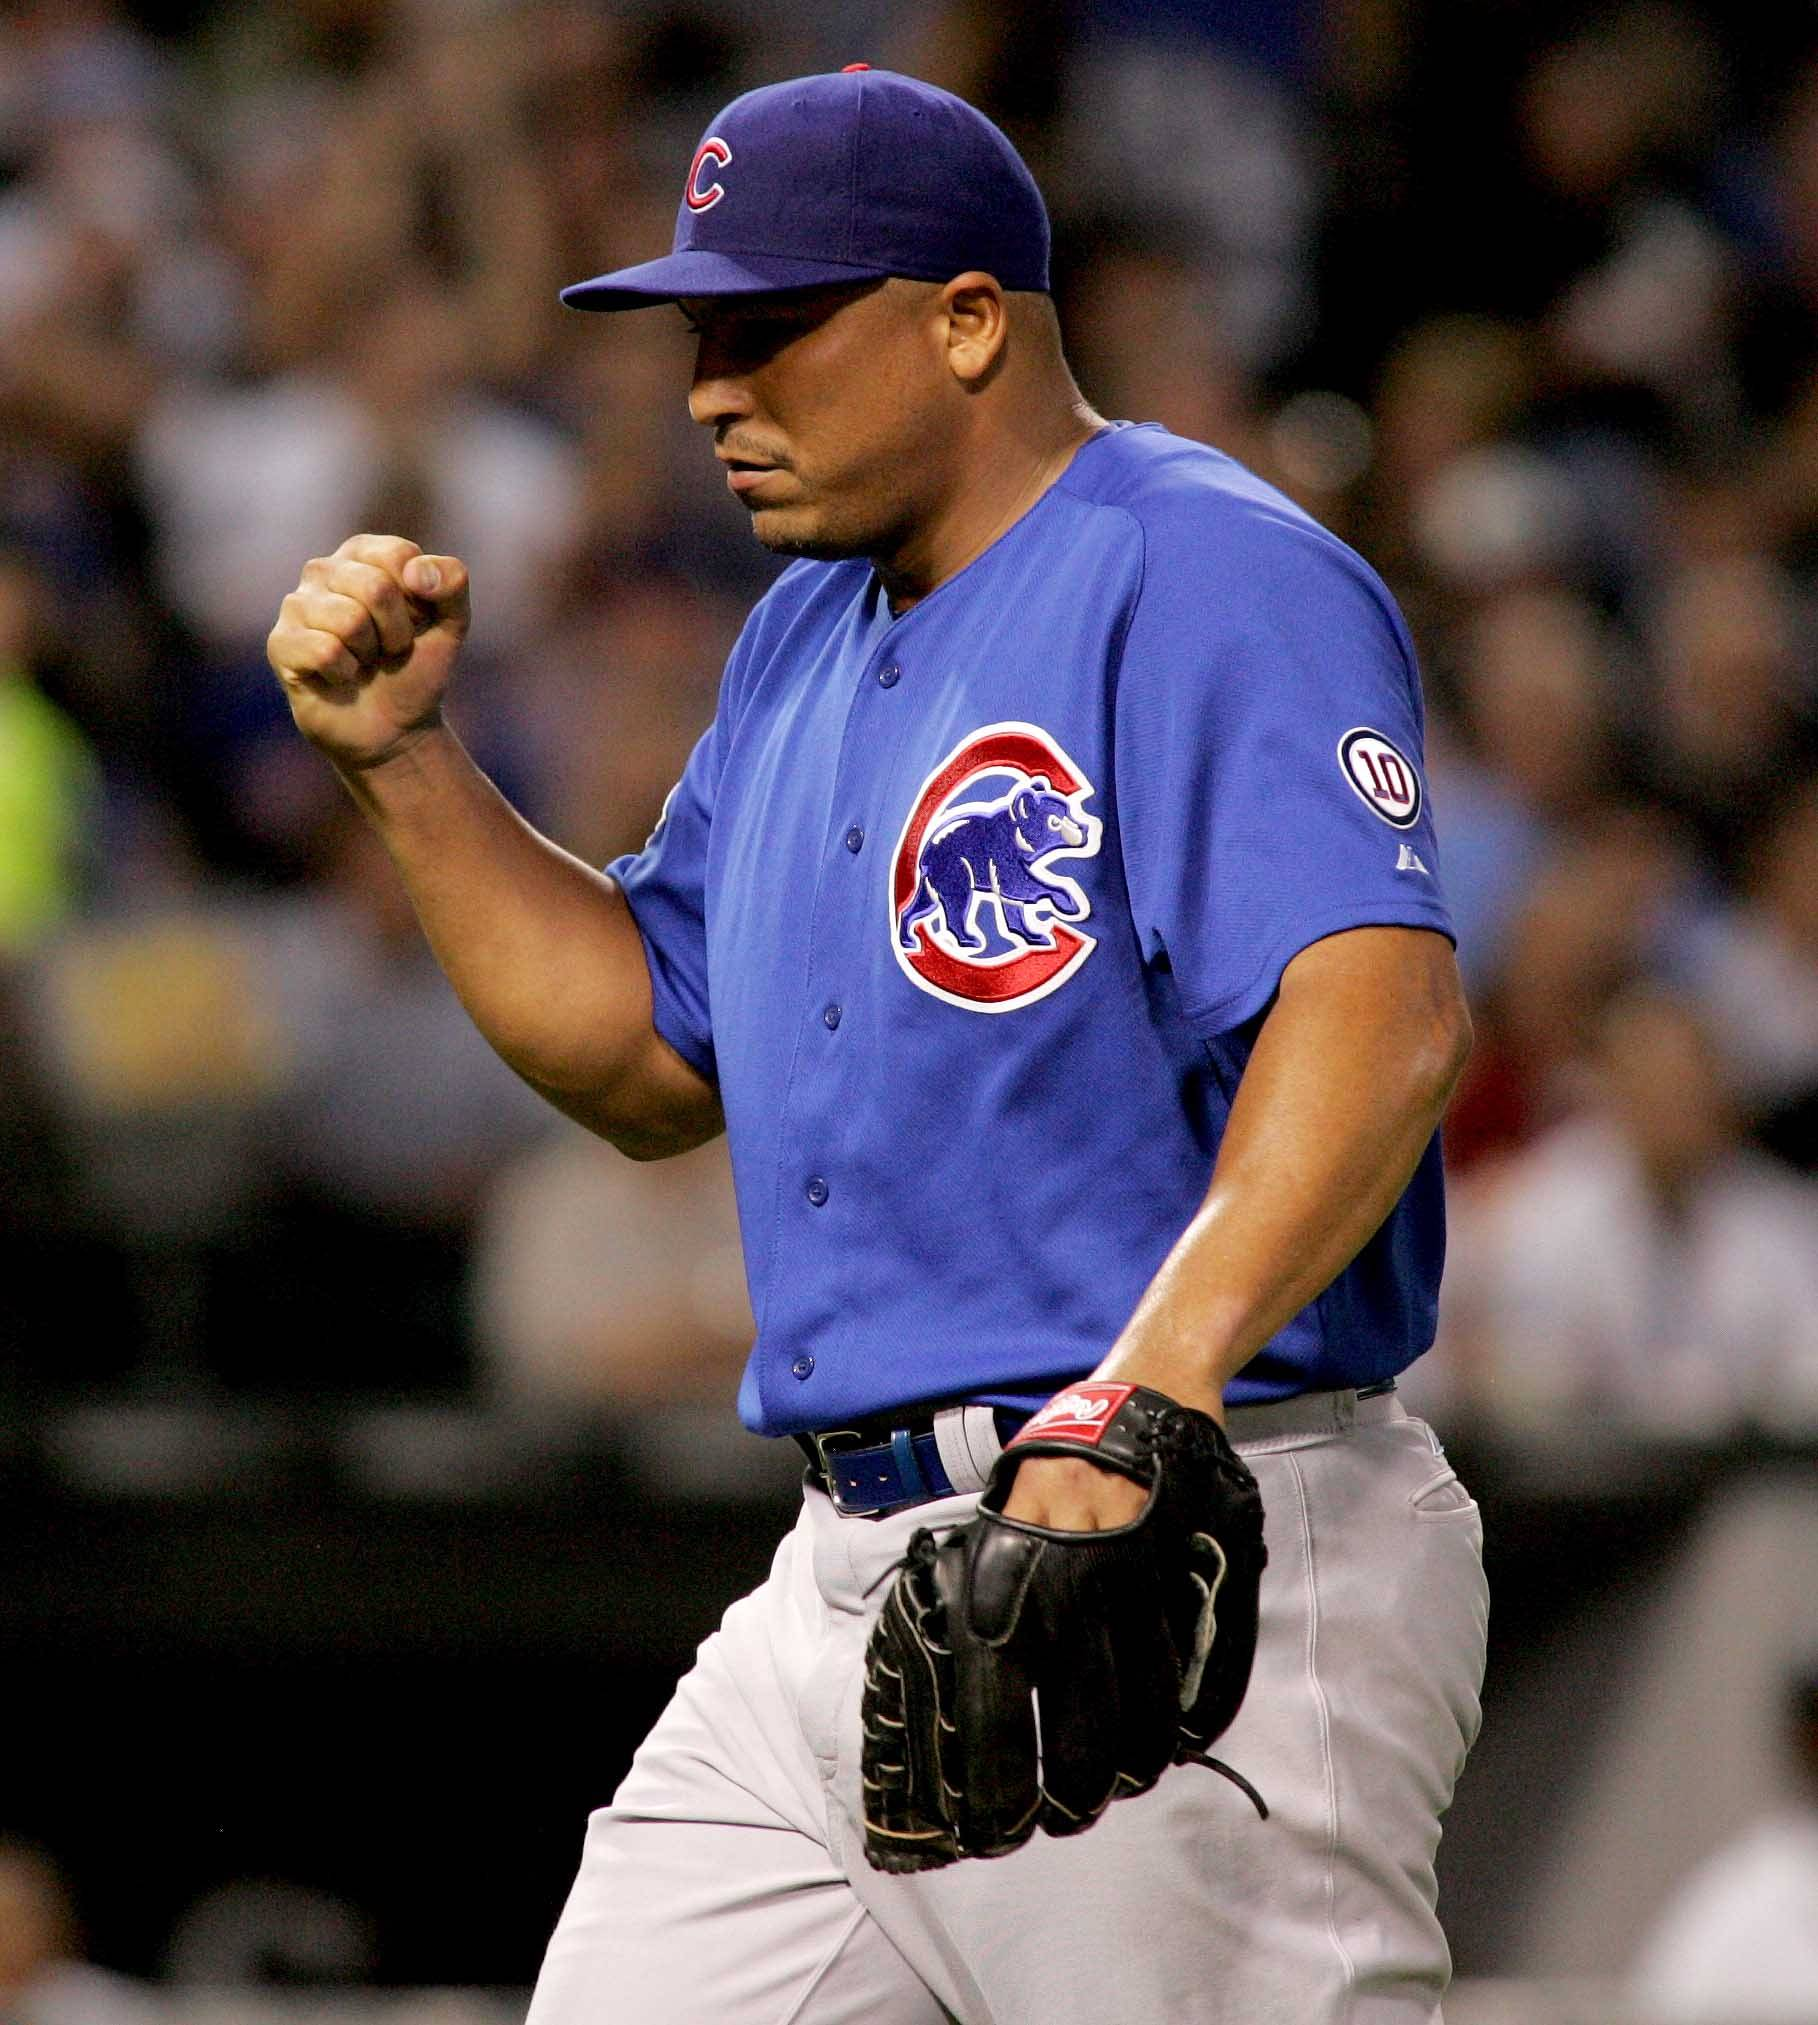 Carlos Zambrano, Derrek Lee join this weekend's Cubs Convention lineup